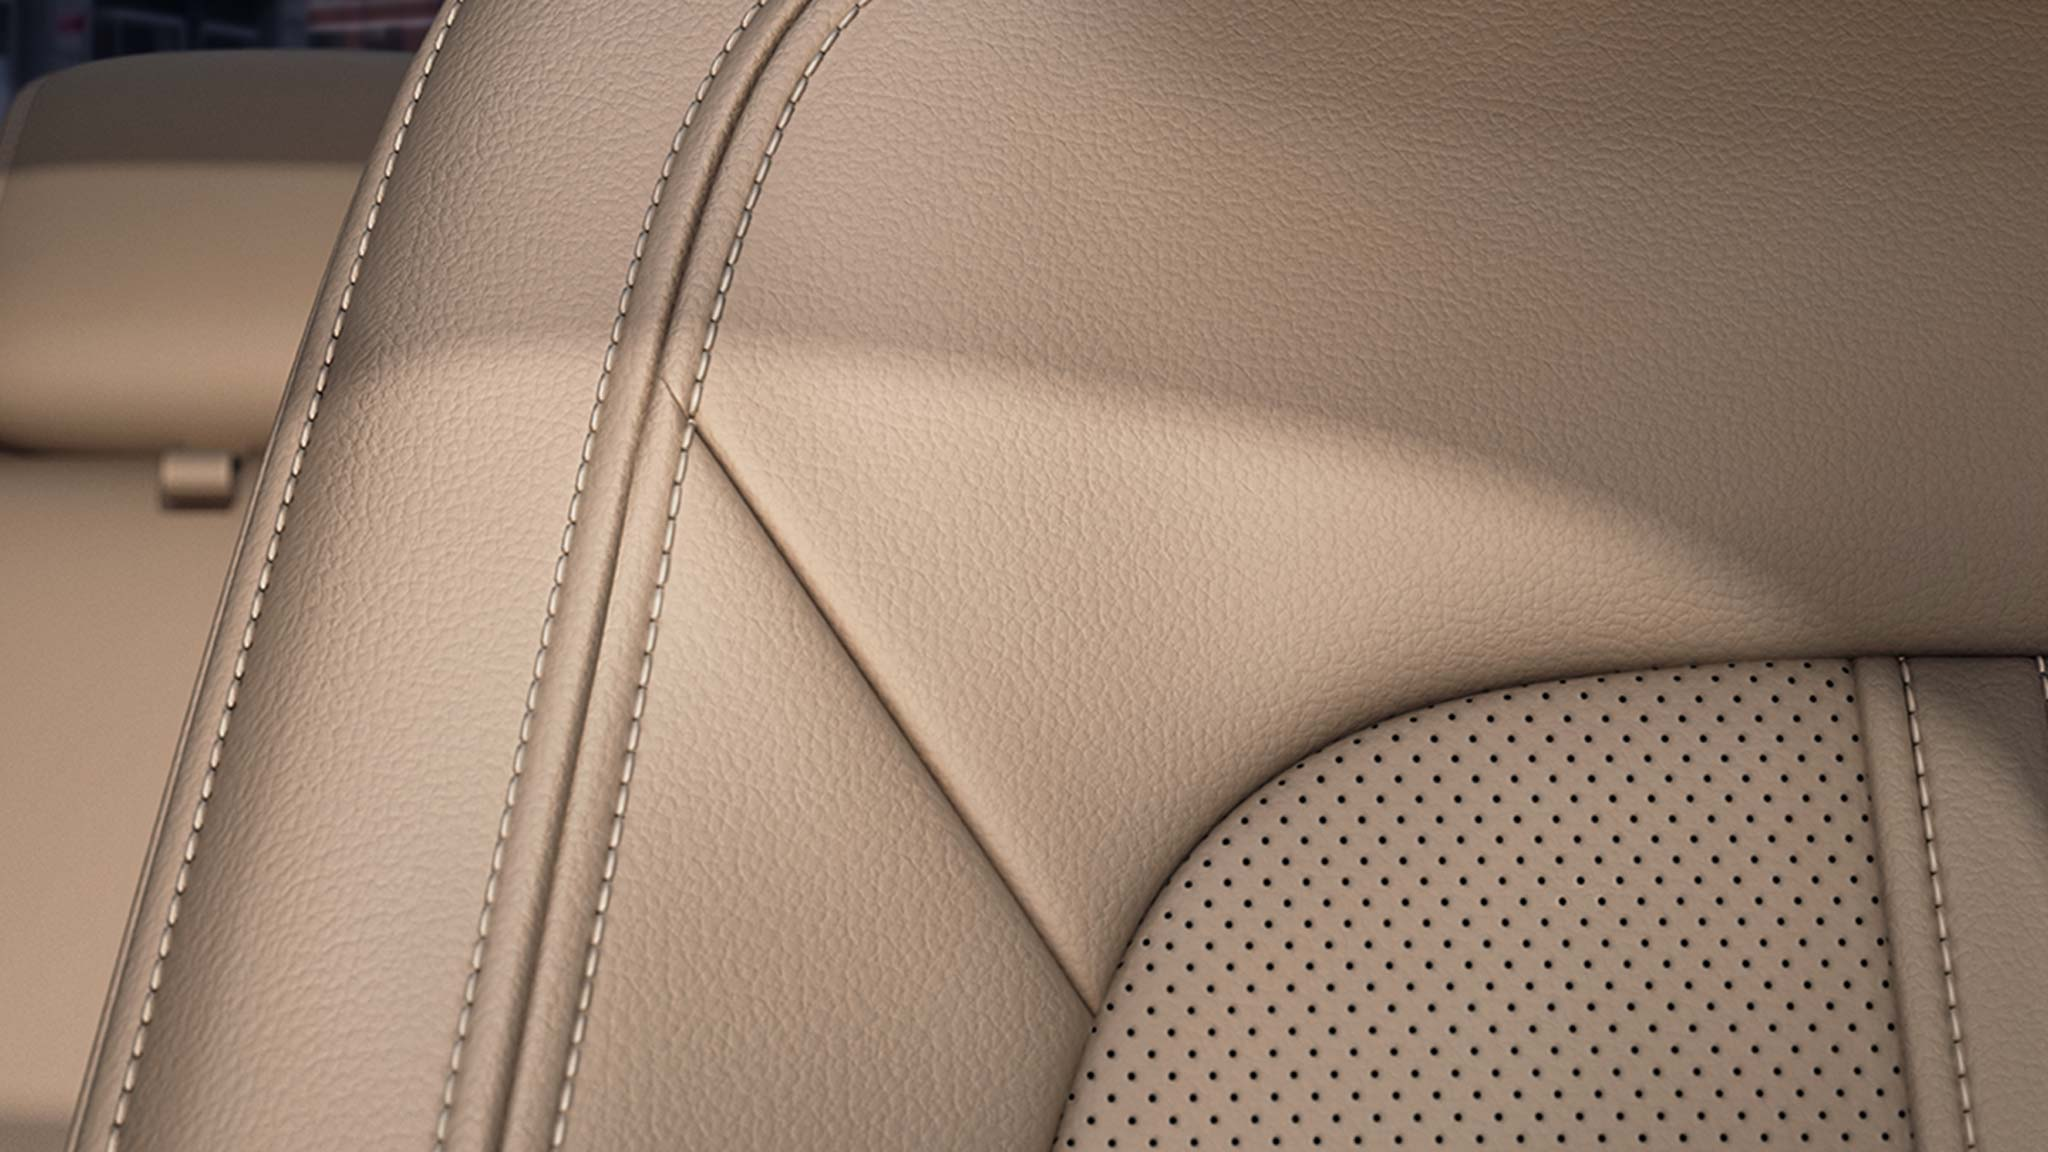 New Lincoln MKZ Interior image 2